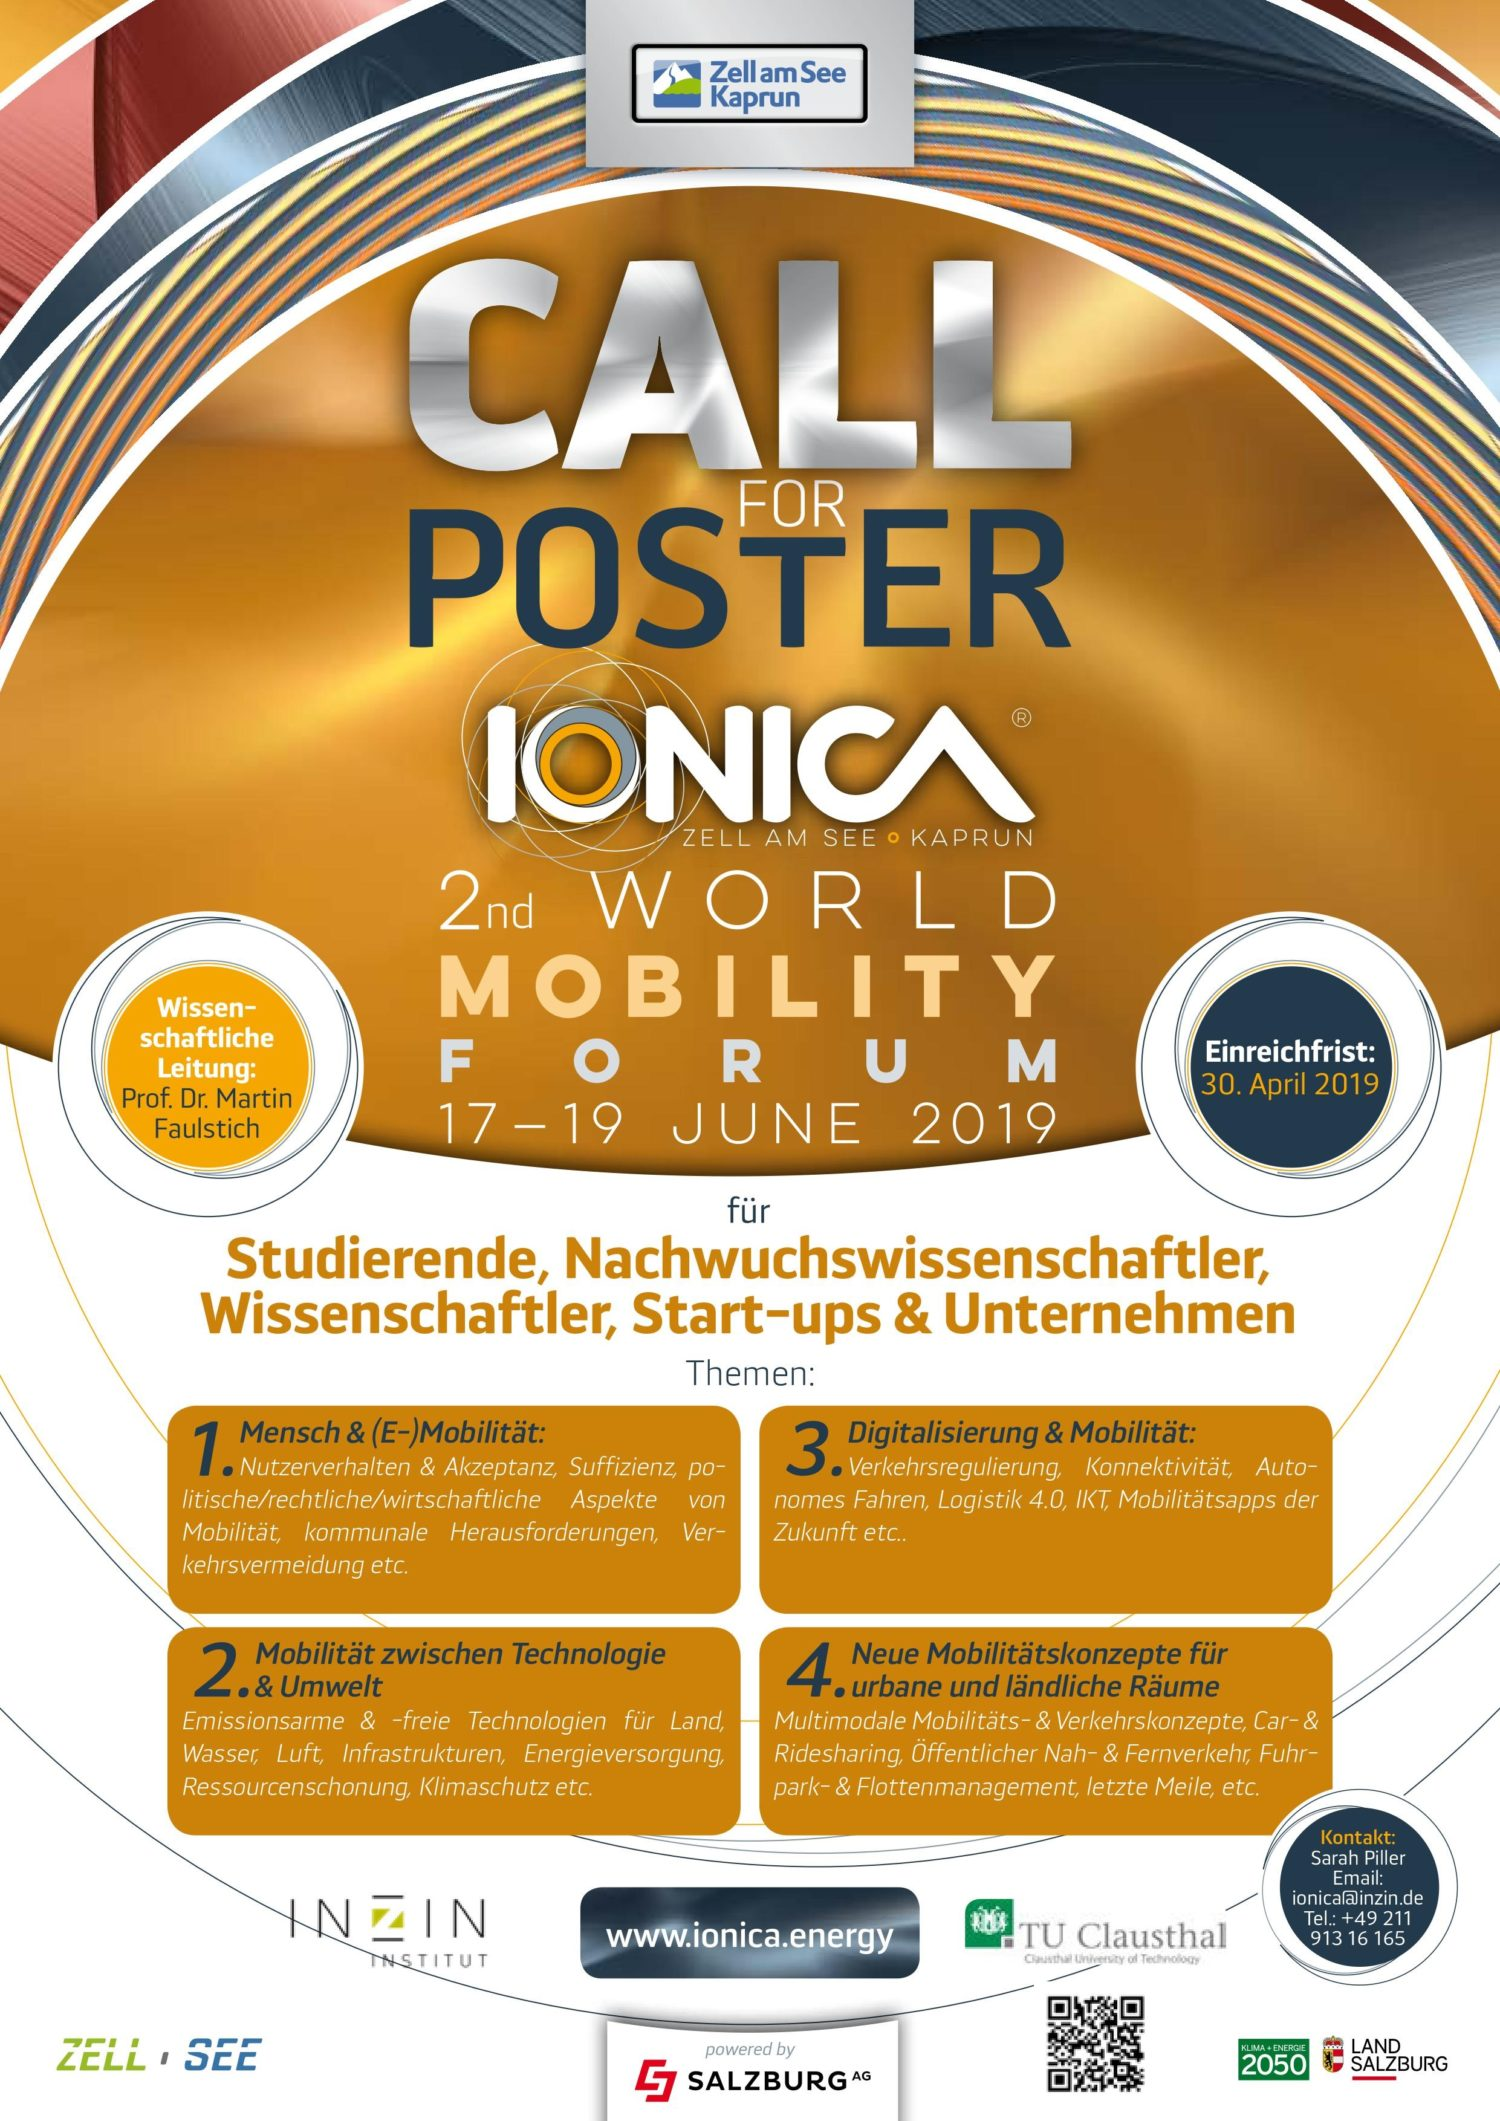 IONICA-Call-for-Poster-1-e1553526862584